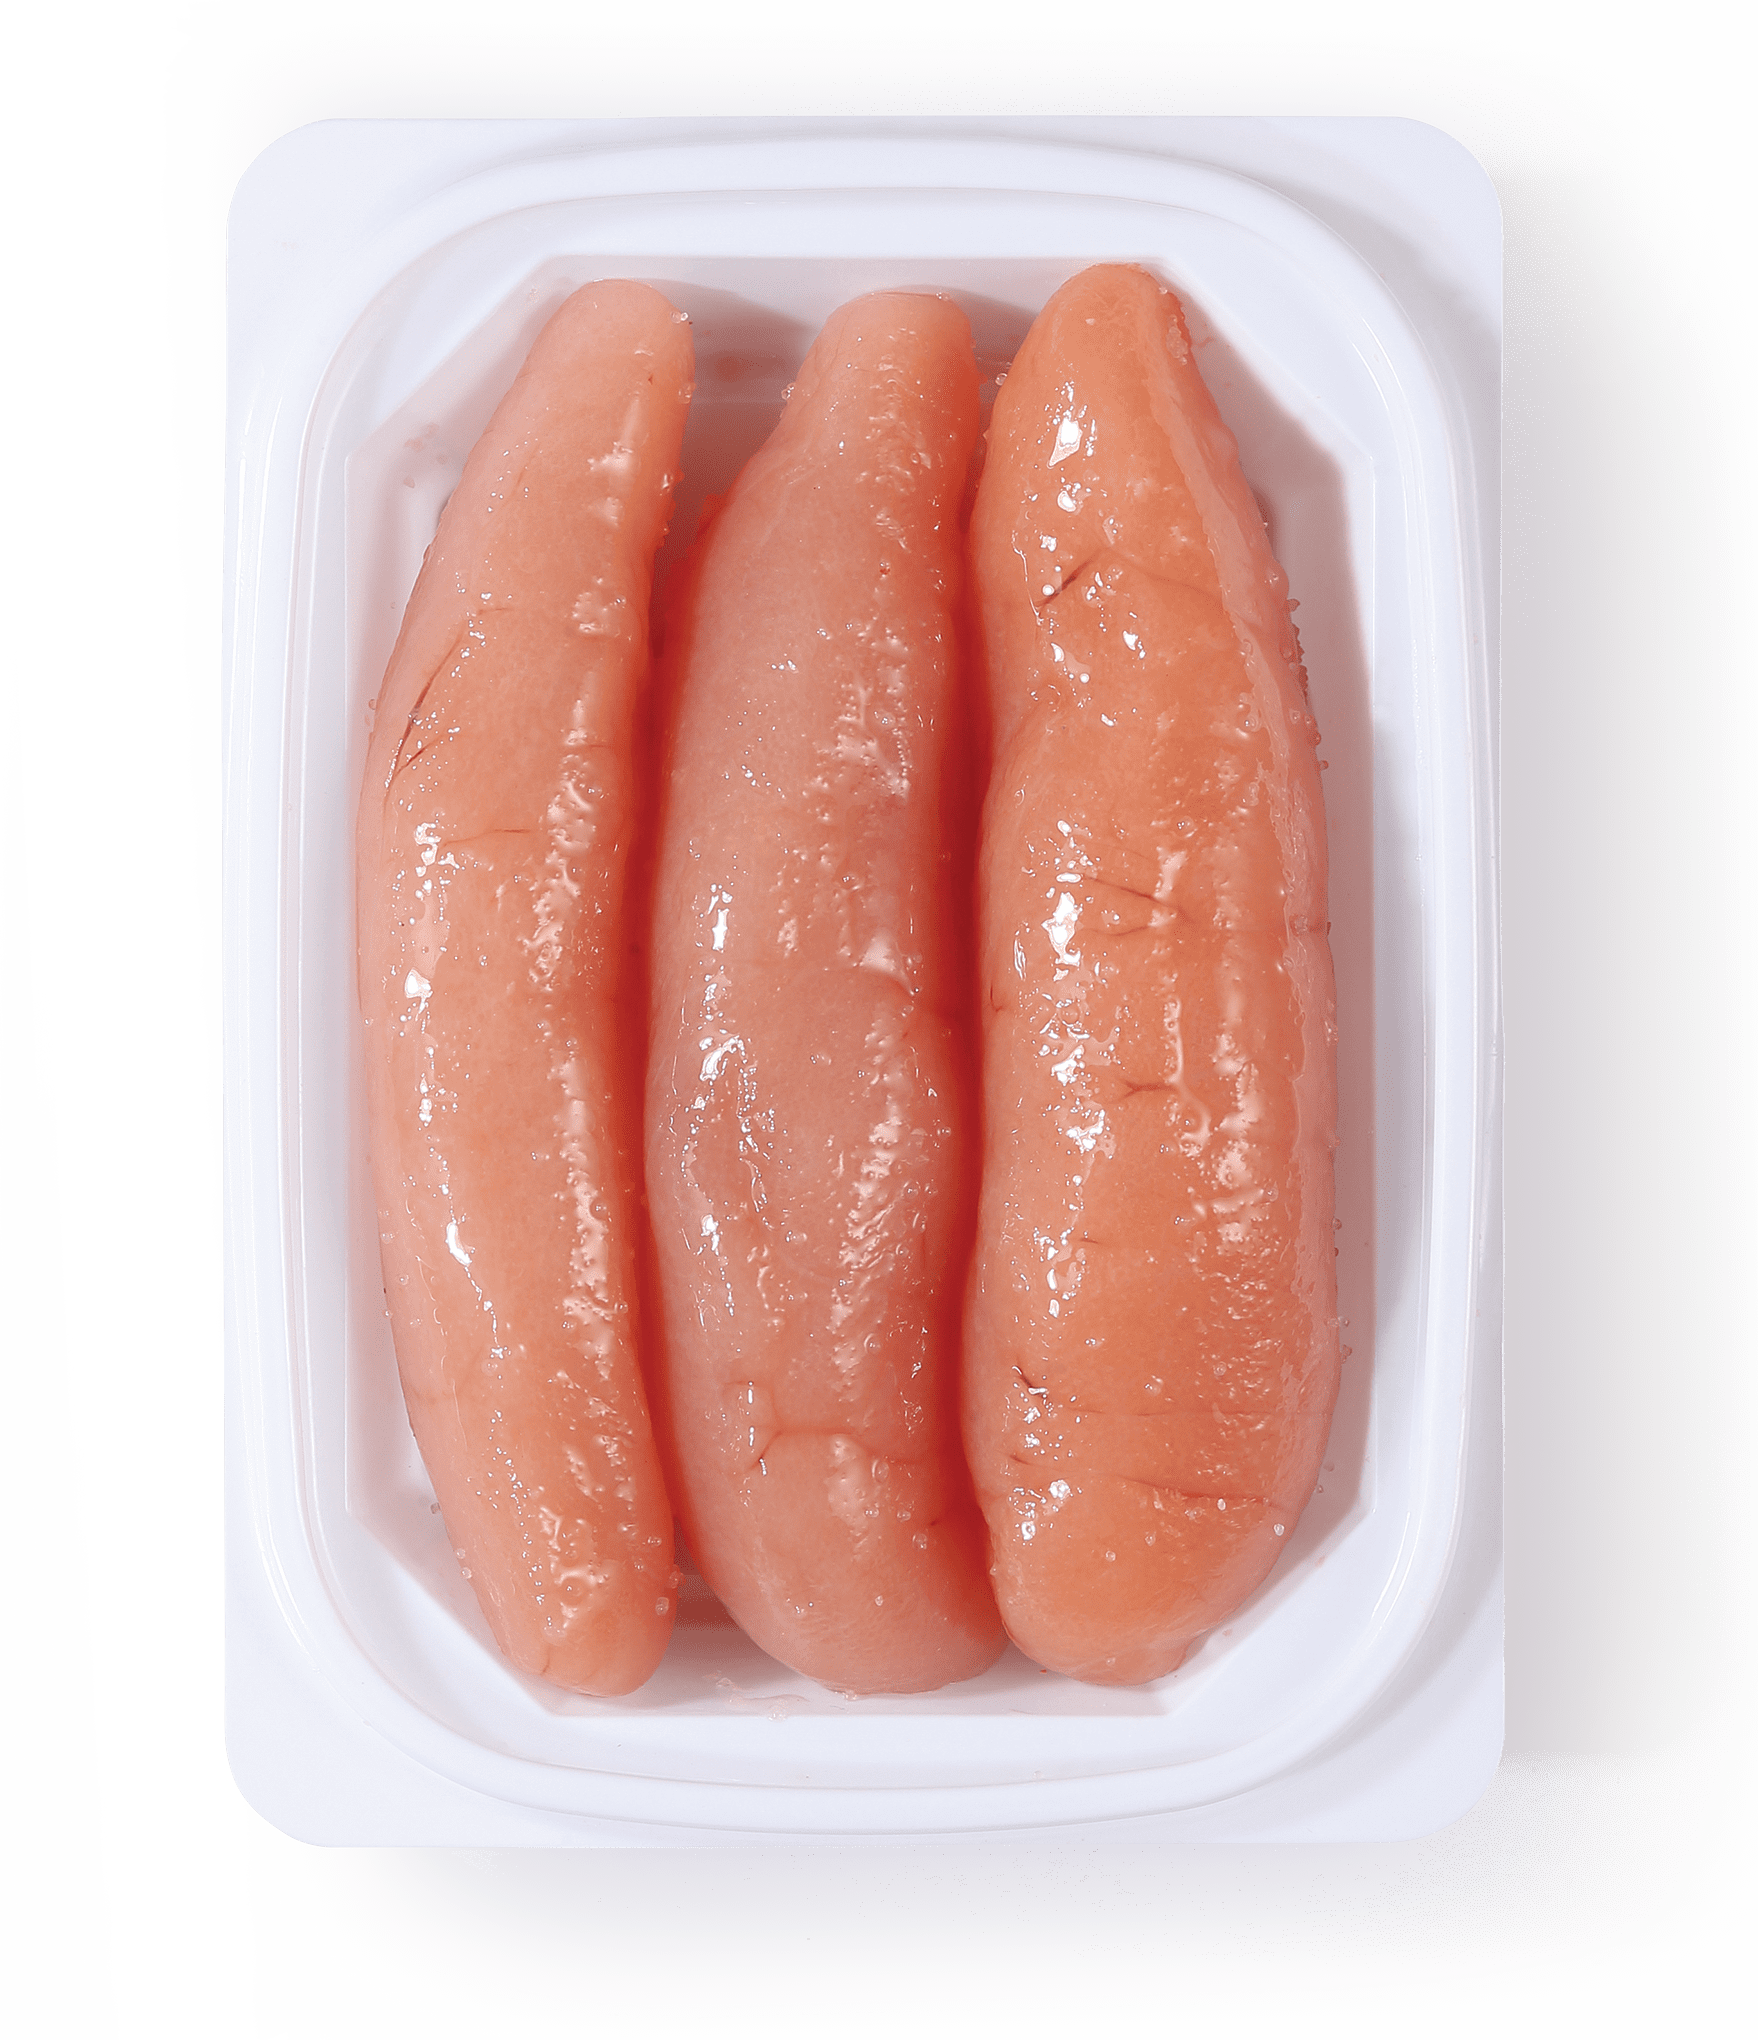 Frozen Korea Premium Wine Seasoned Pollack Pollock Cod Egg Seasoned Roe made in Korea